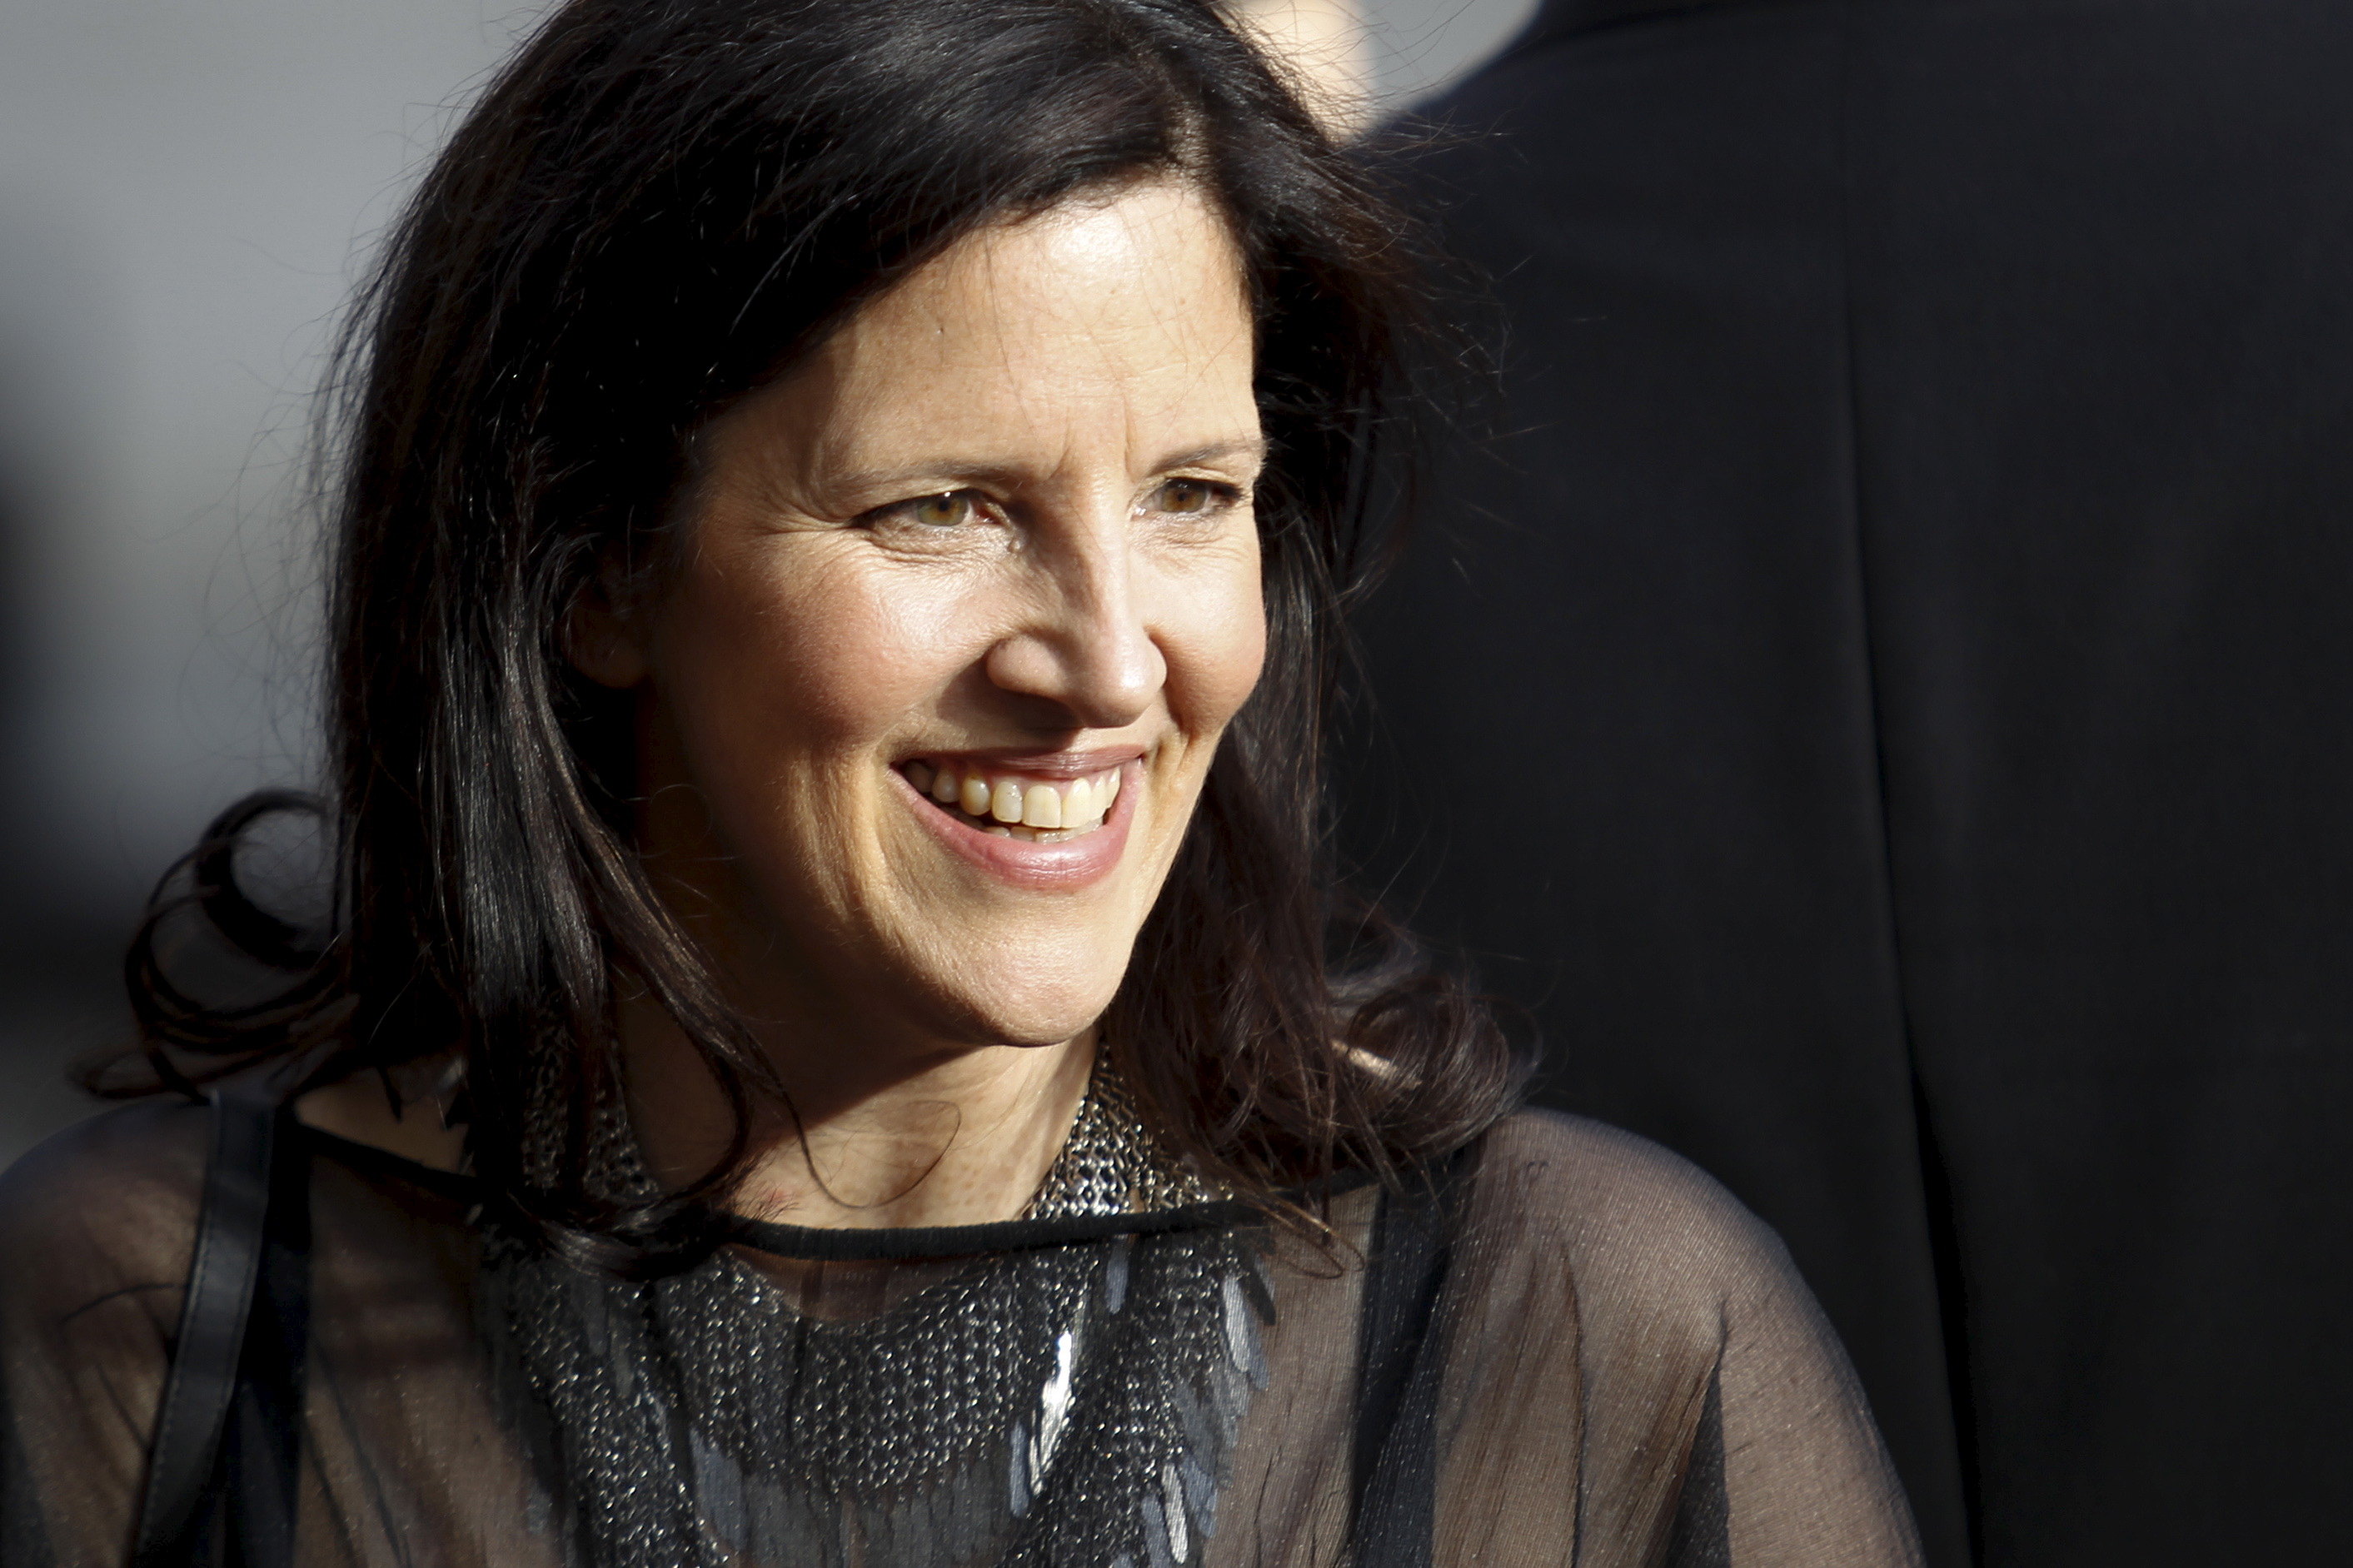 Director Laura Poitras arrives to attend the Chaplin award at Alice Tully Hall in New York April 27, 2015.